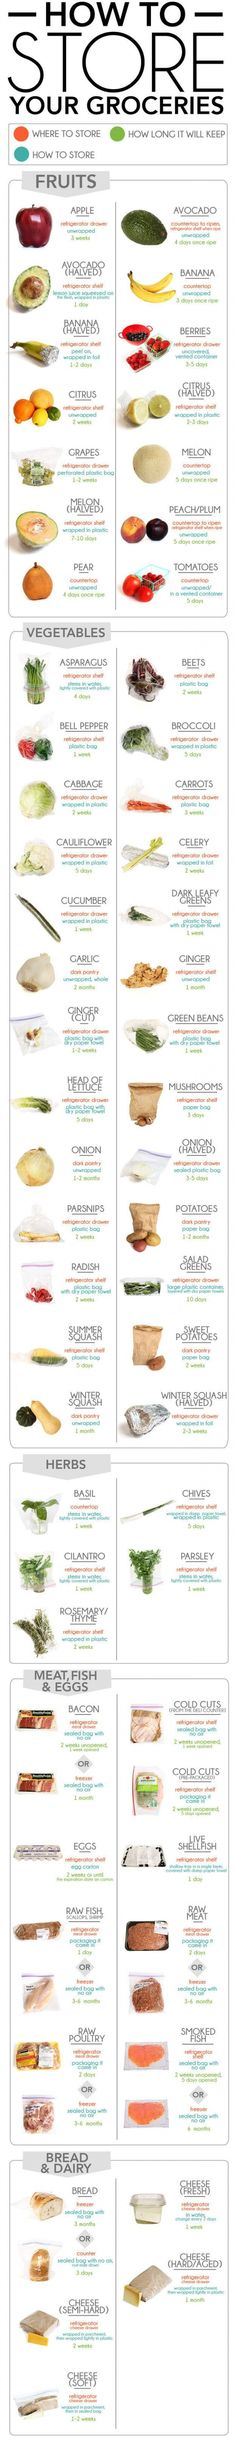 Know Exactly How to Store Your Groceries